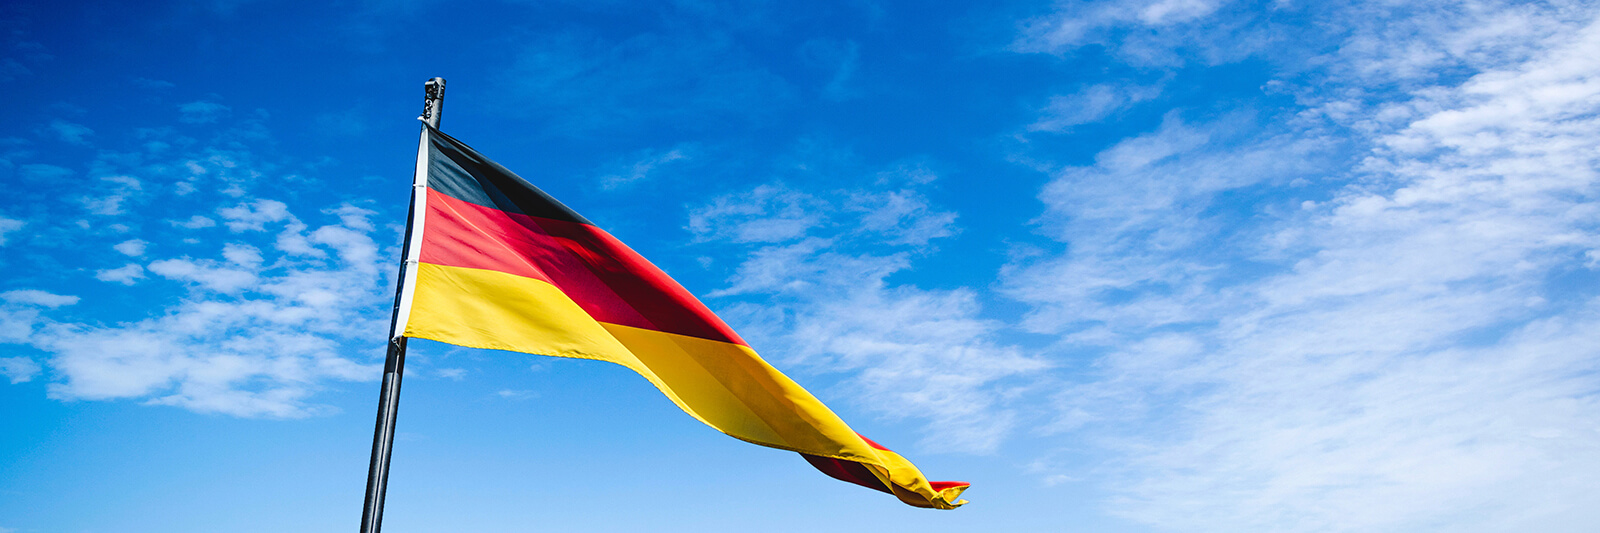 German flag flying high over the blue skies of Berlin